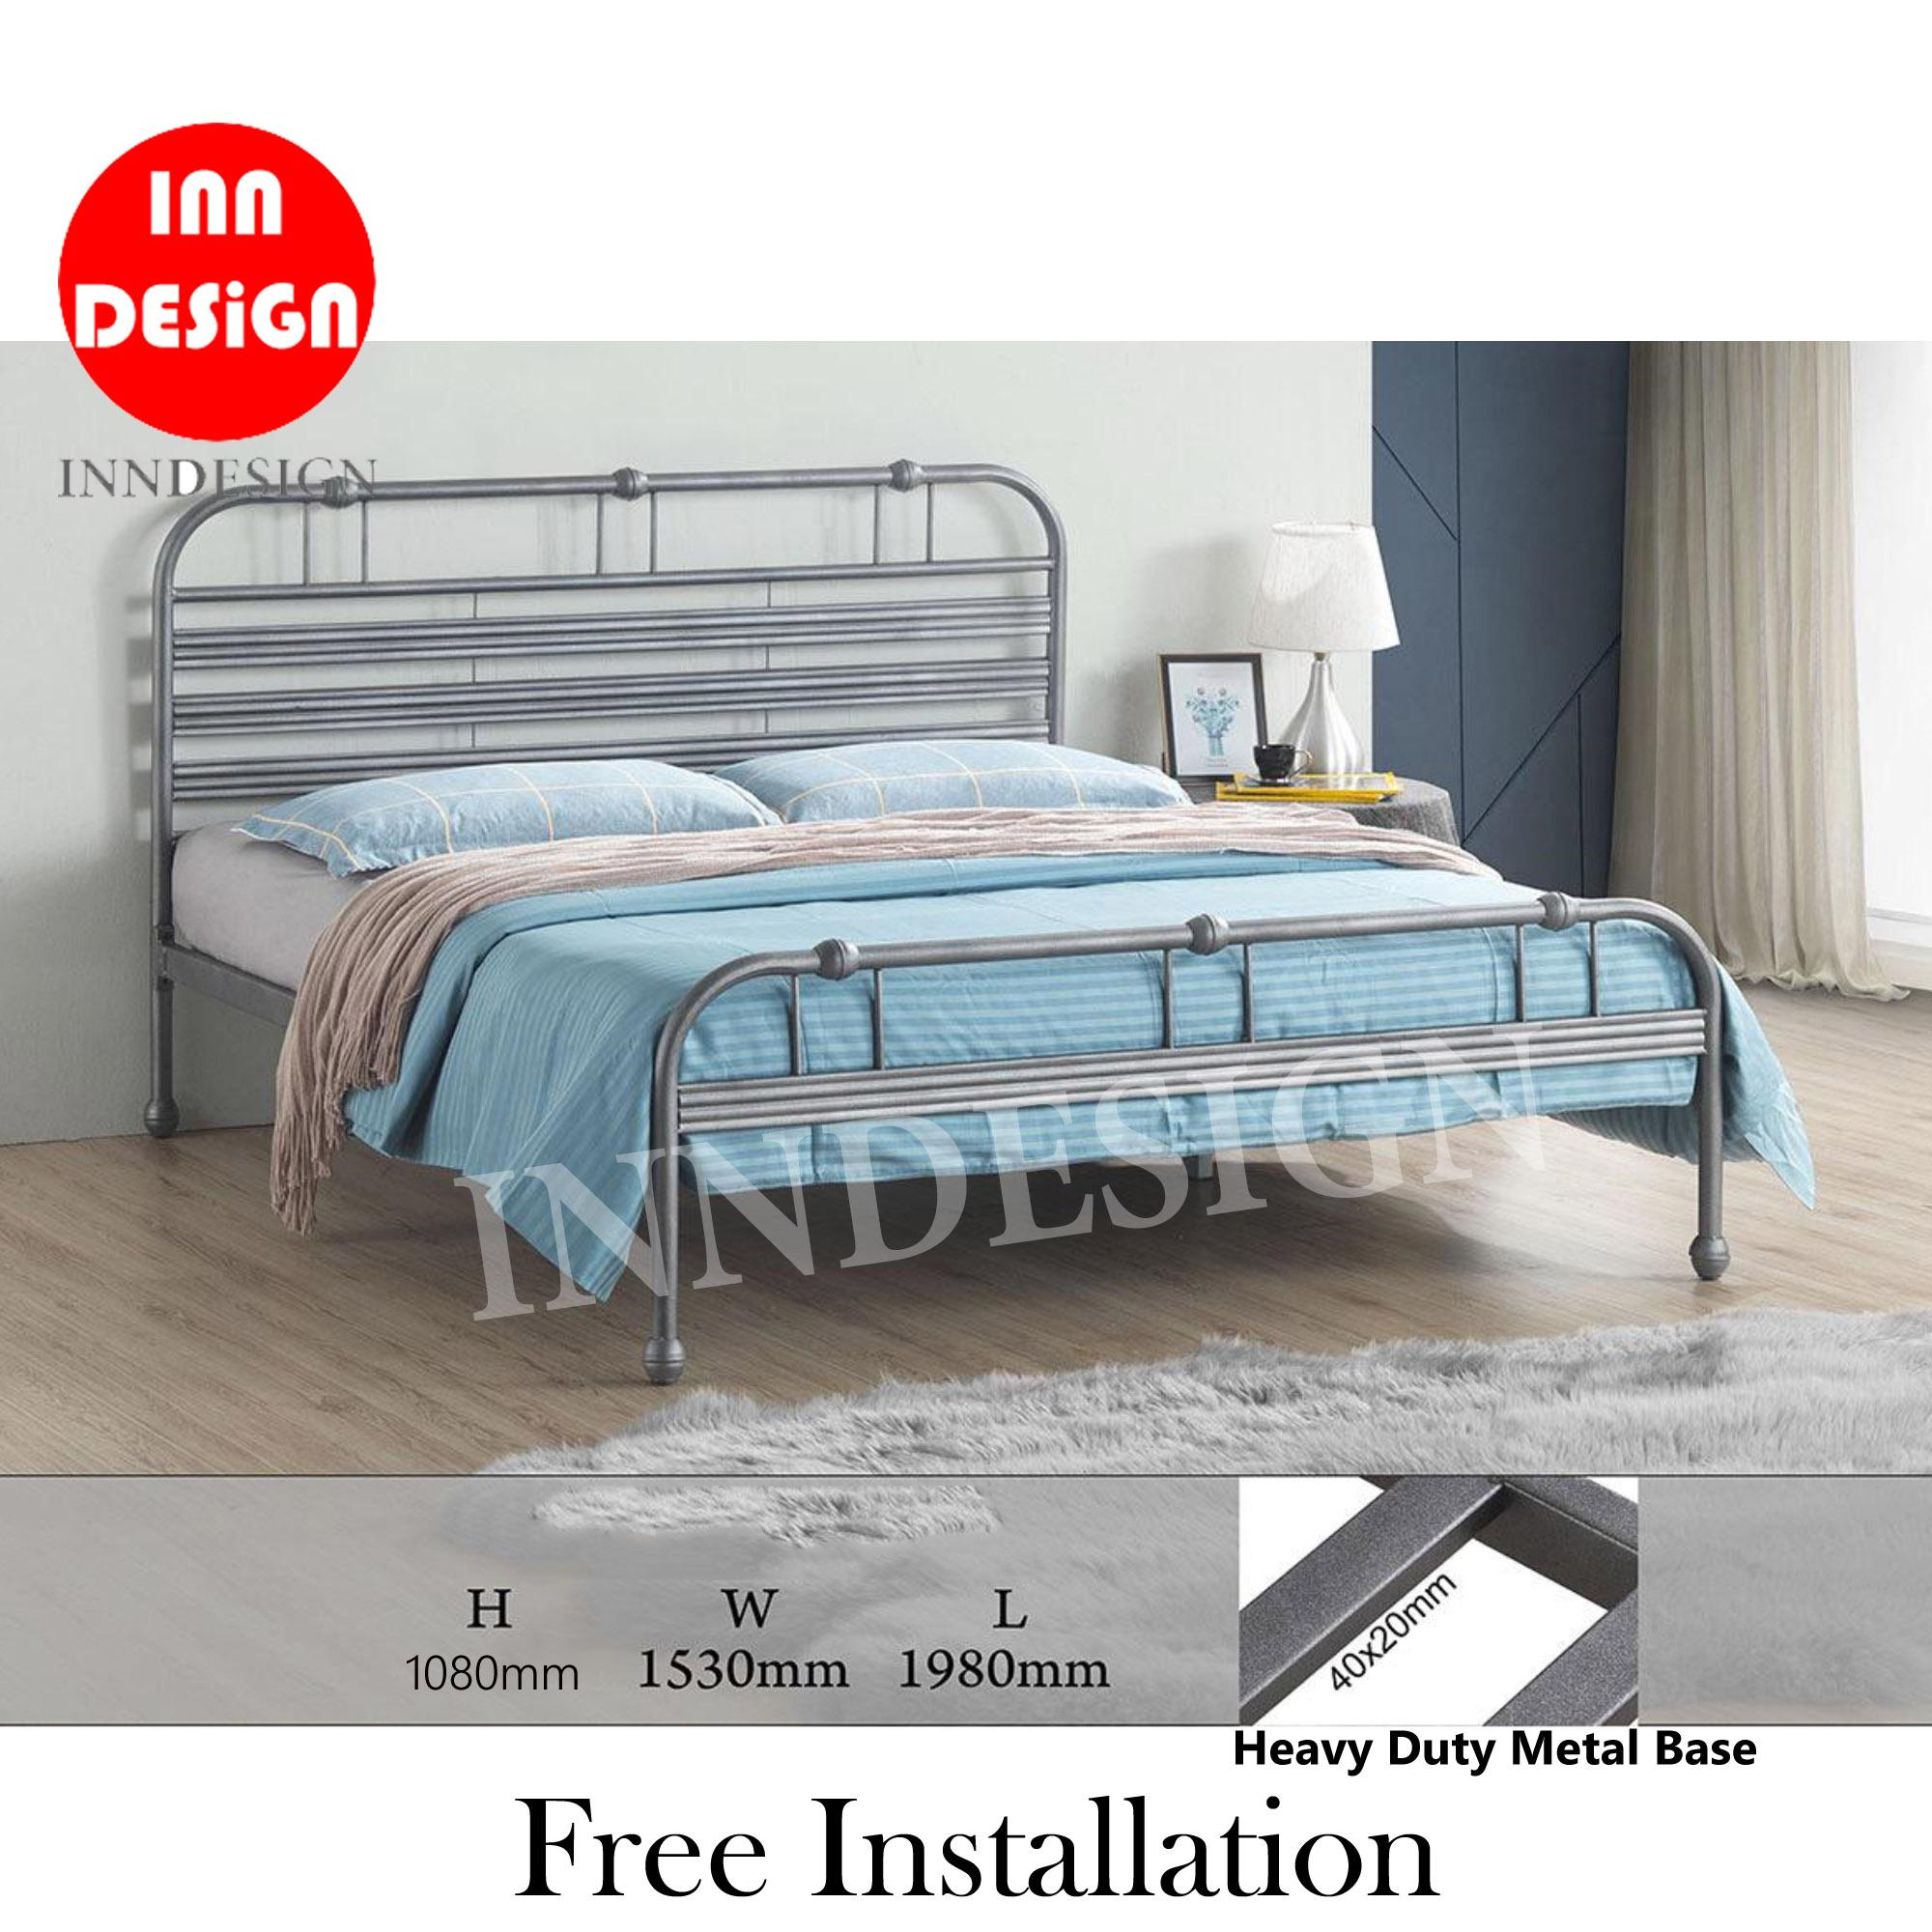 [NEW ARRIVAL] [6 Months Warranty] Qano Queen Heavy Duty Metal Bedframe / Bed / Bed frame (Free Delivery and Installation)